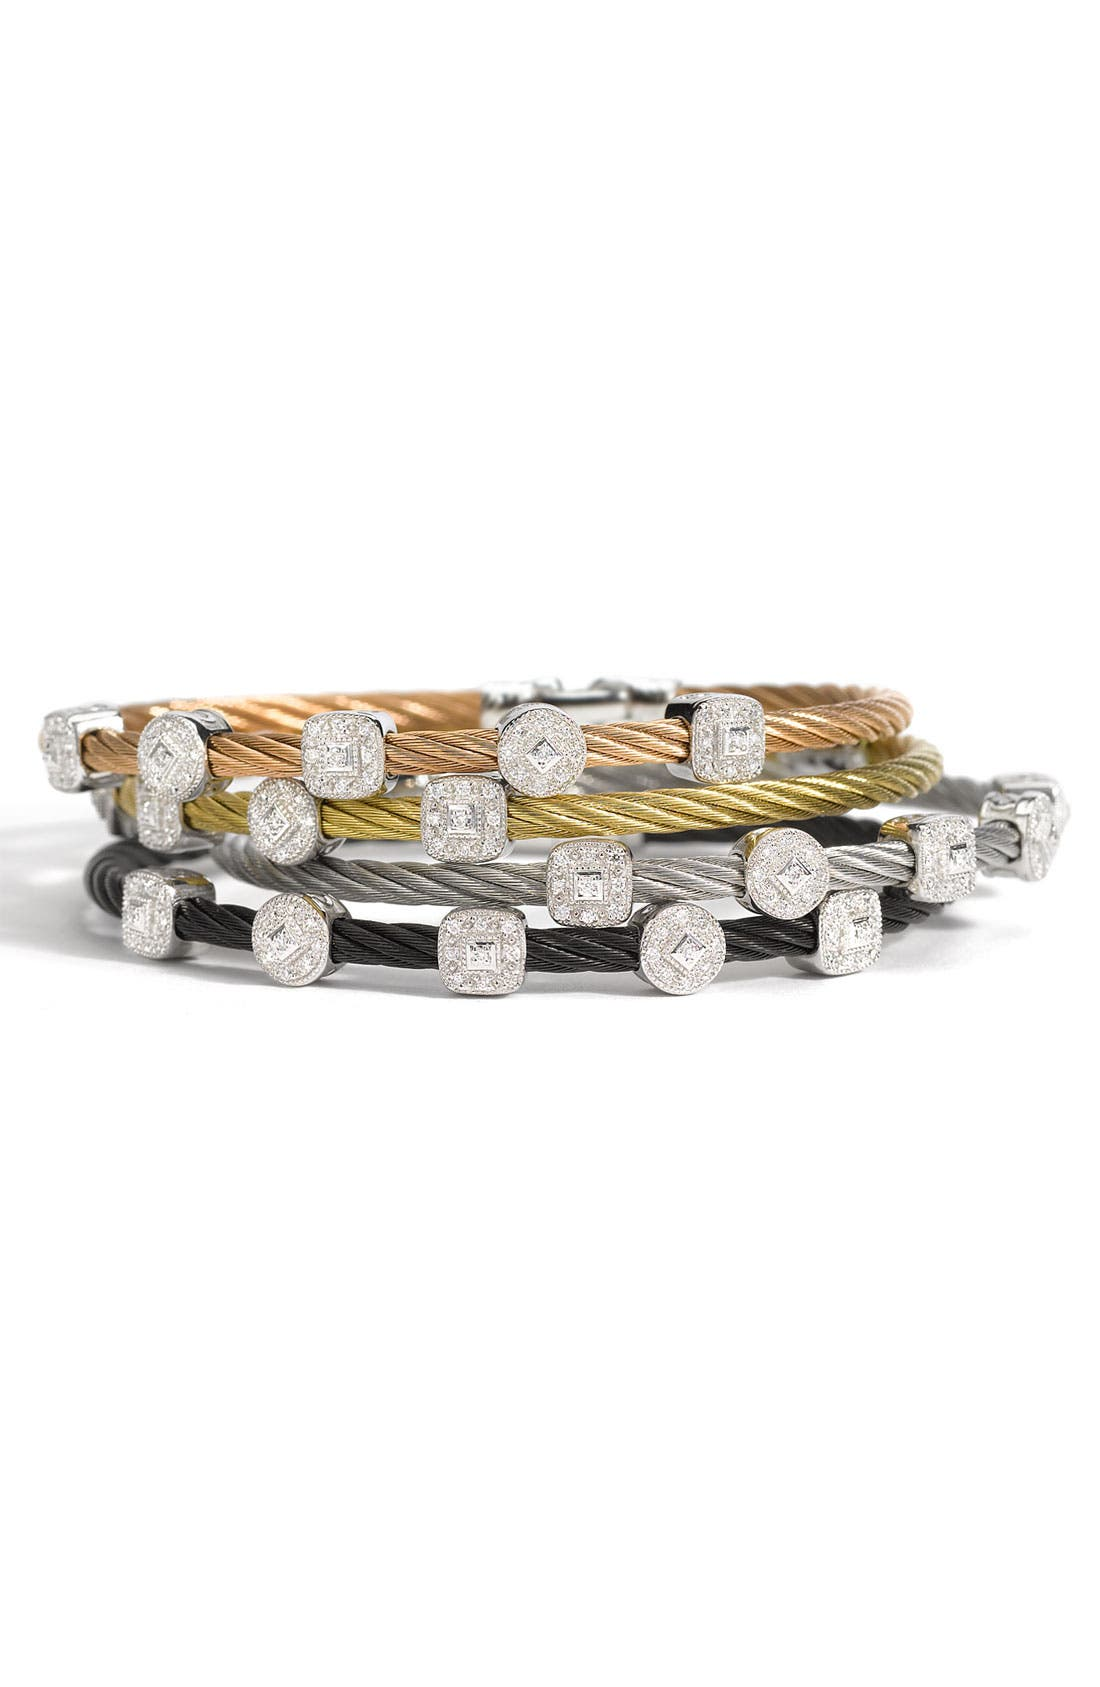 Main Image - ALOR® 5-Station Diamond Bracelet (Nordstrom Exclusive)